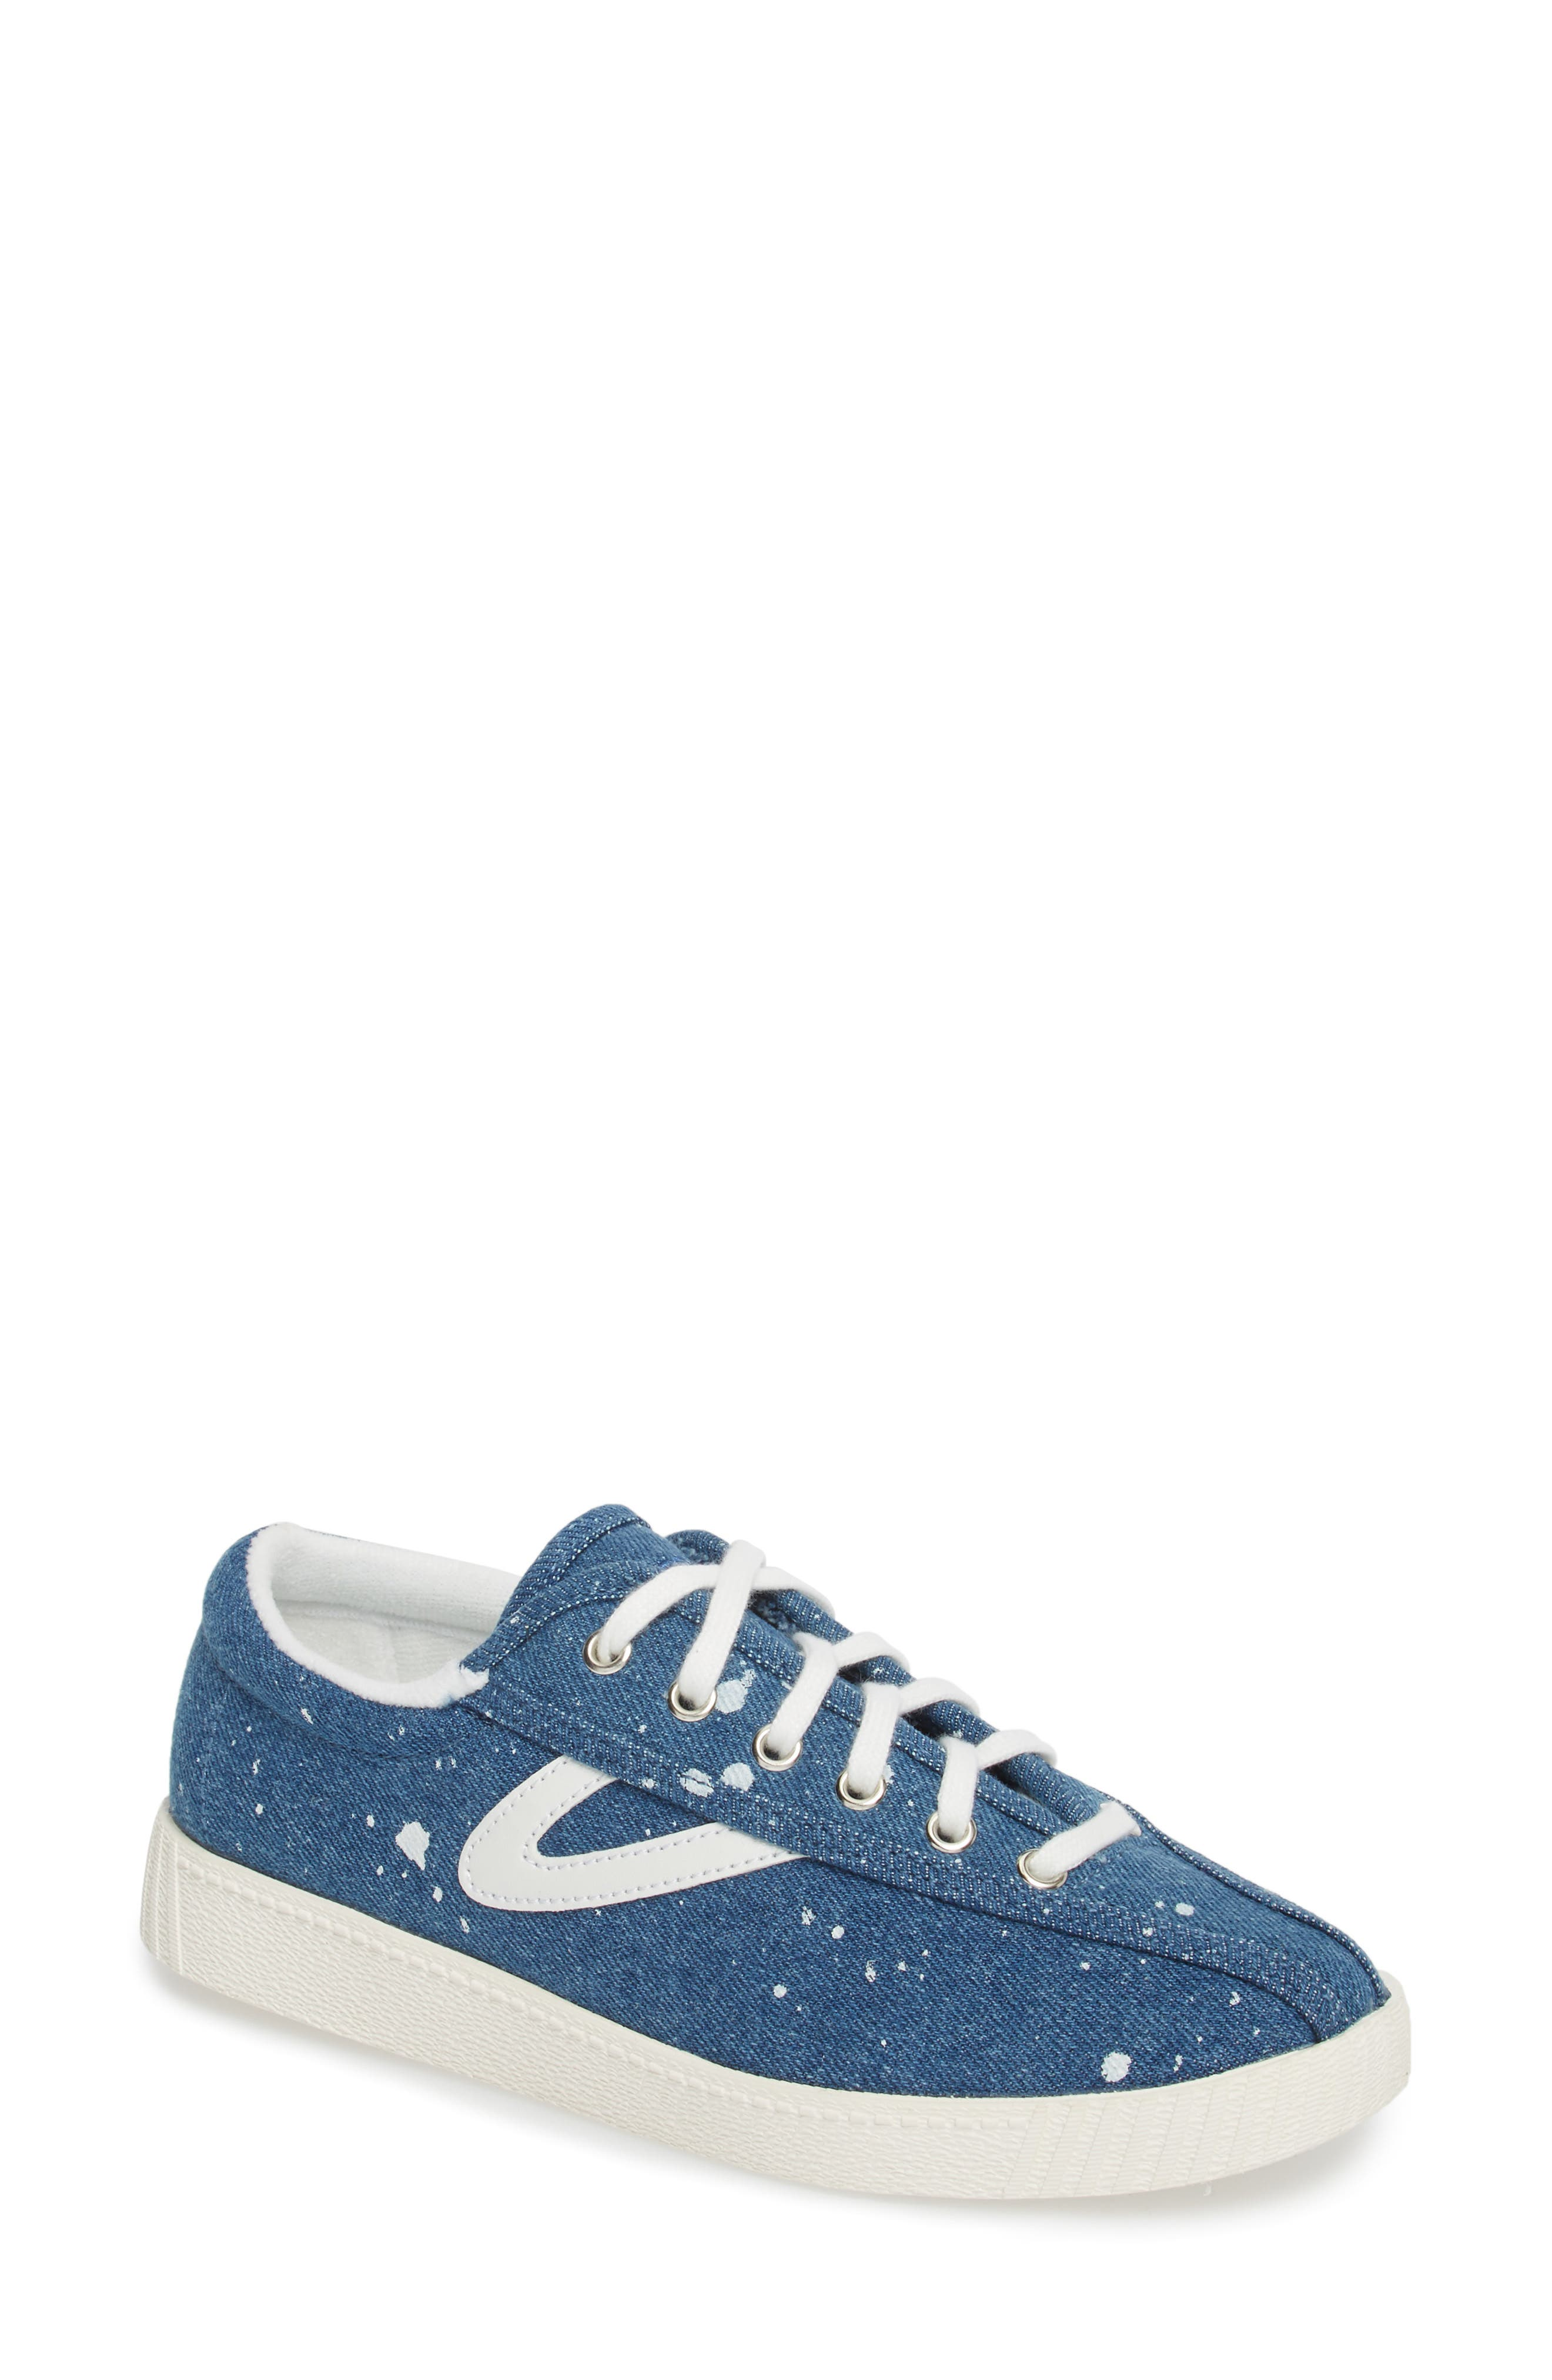 Nylite Plus Sneaker,                         Main,                         color, Blue Fabric